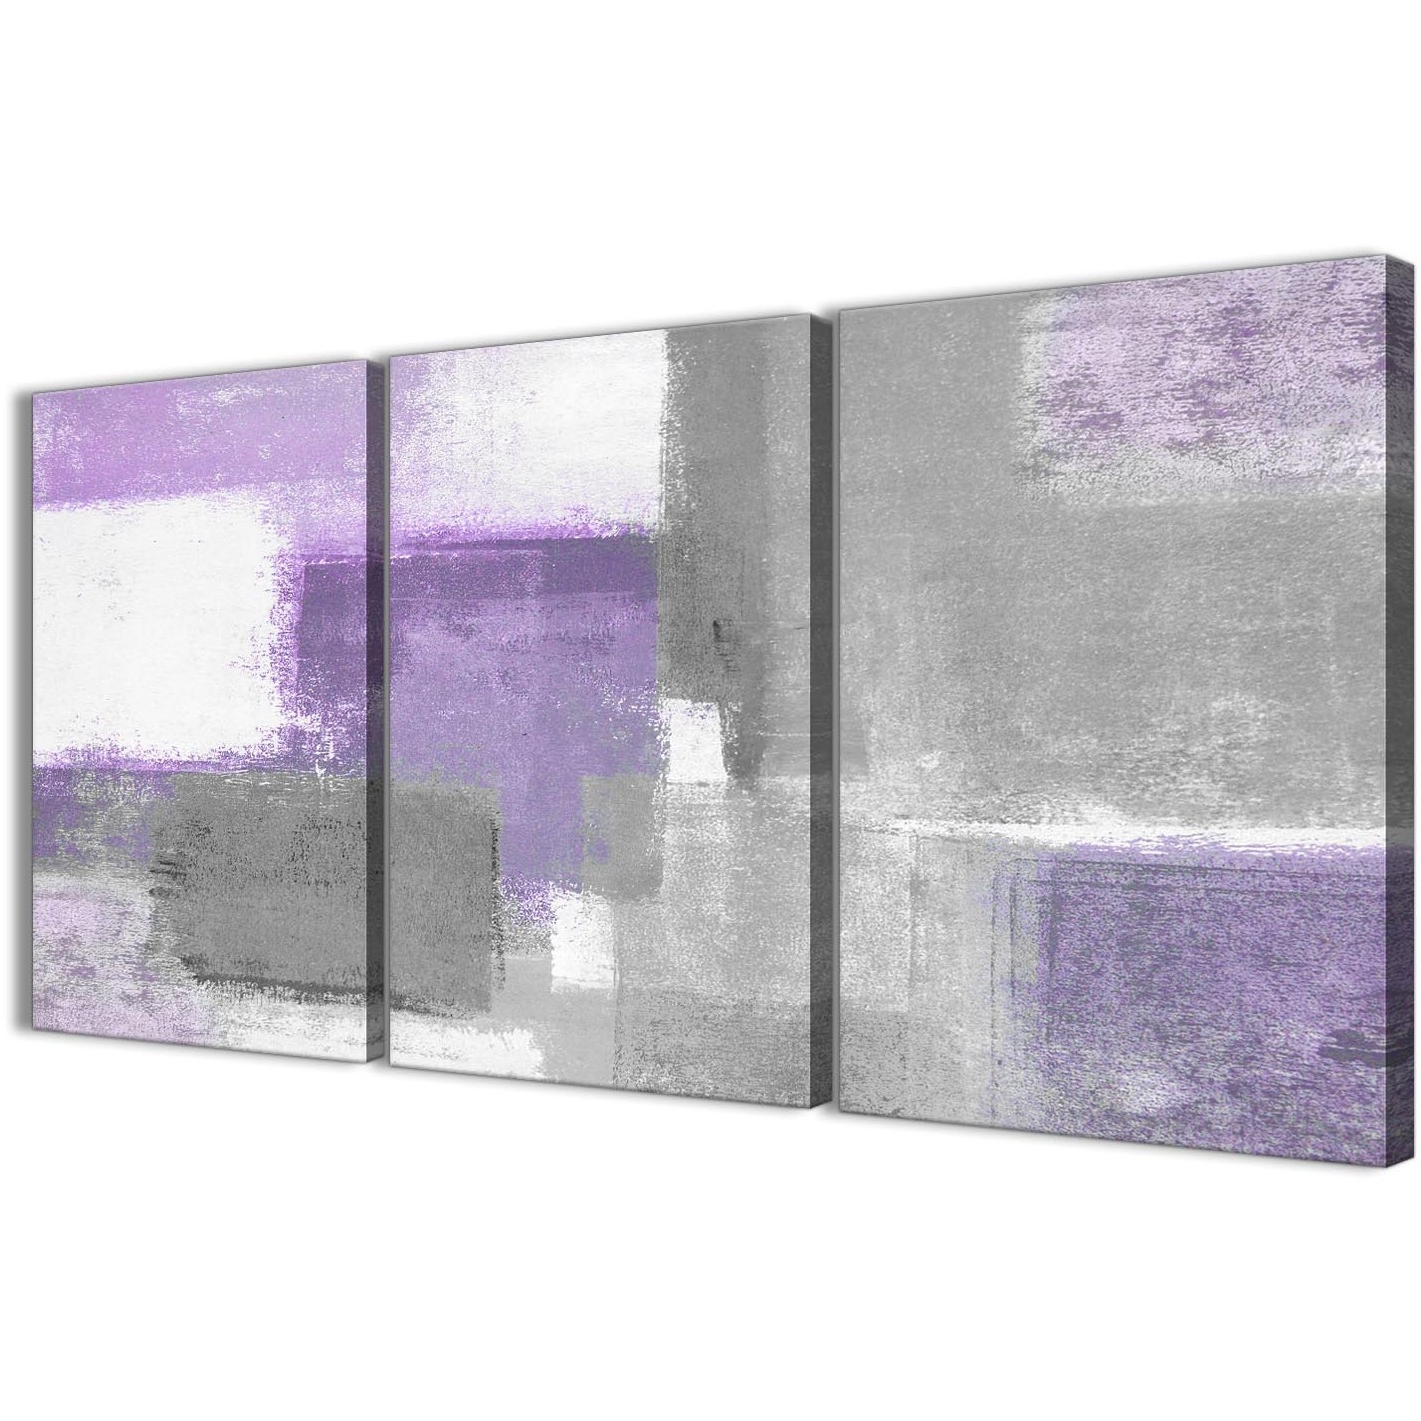 2017 Gray Canvas Wall Art For 3 Piece Purple Grey Painting Kitchen Canvas Pictures Decor (View 1 of 20)